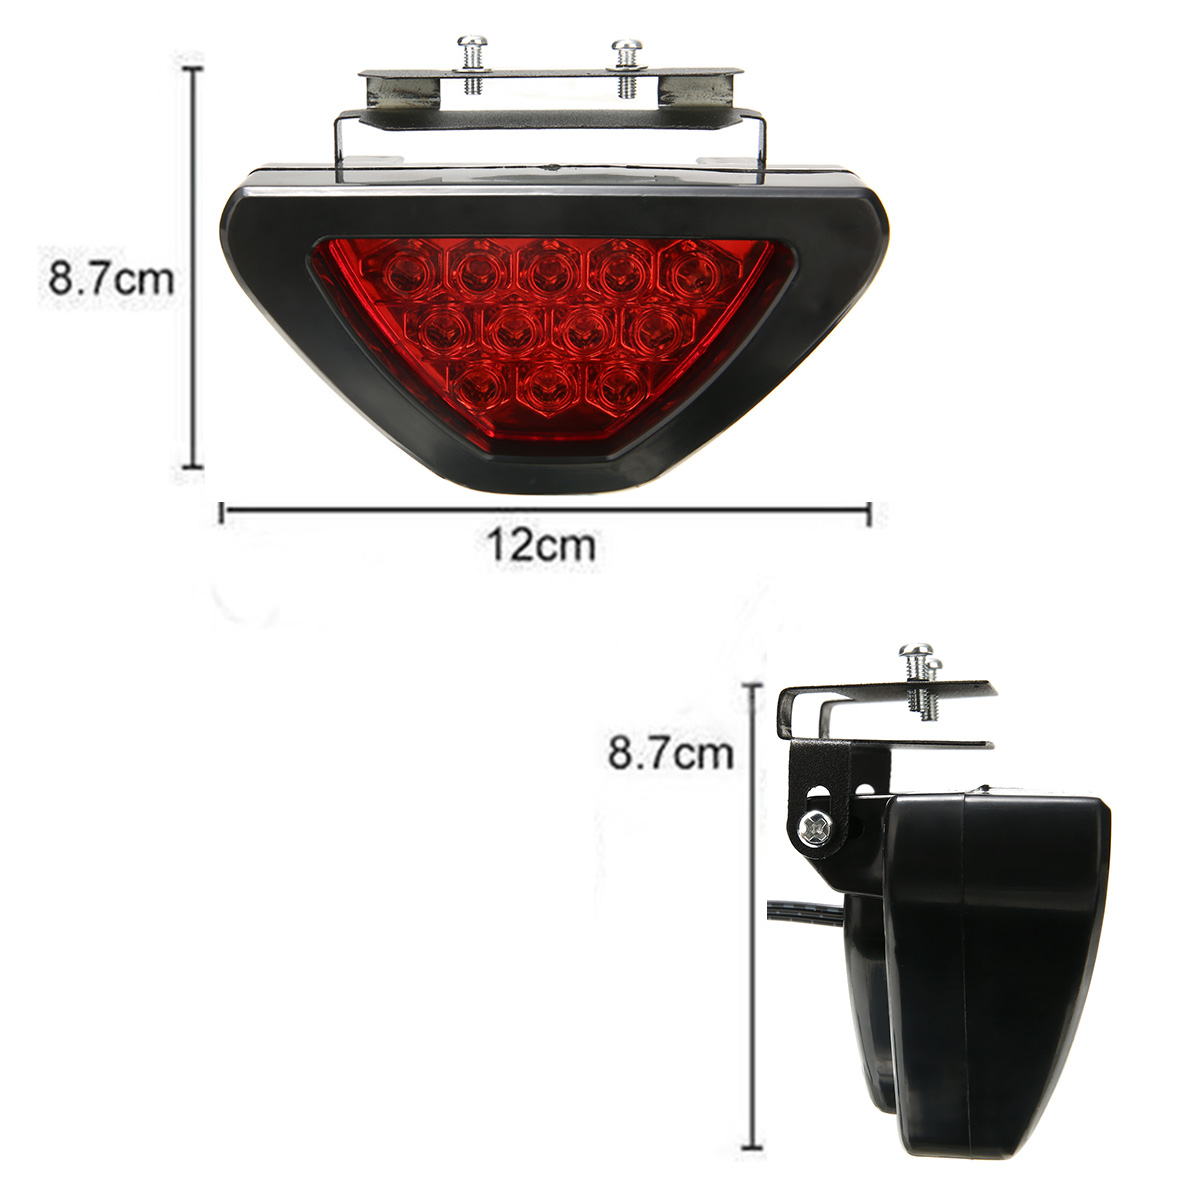 Image 5 - For Car Truck Brake Lights Universal F1 Style 12 LED Red Rear Tail Third Brake Stop Light Safety Signal Lamp-in Signal Lamp from Automobiles & Motorcycles